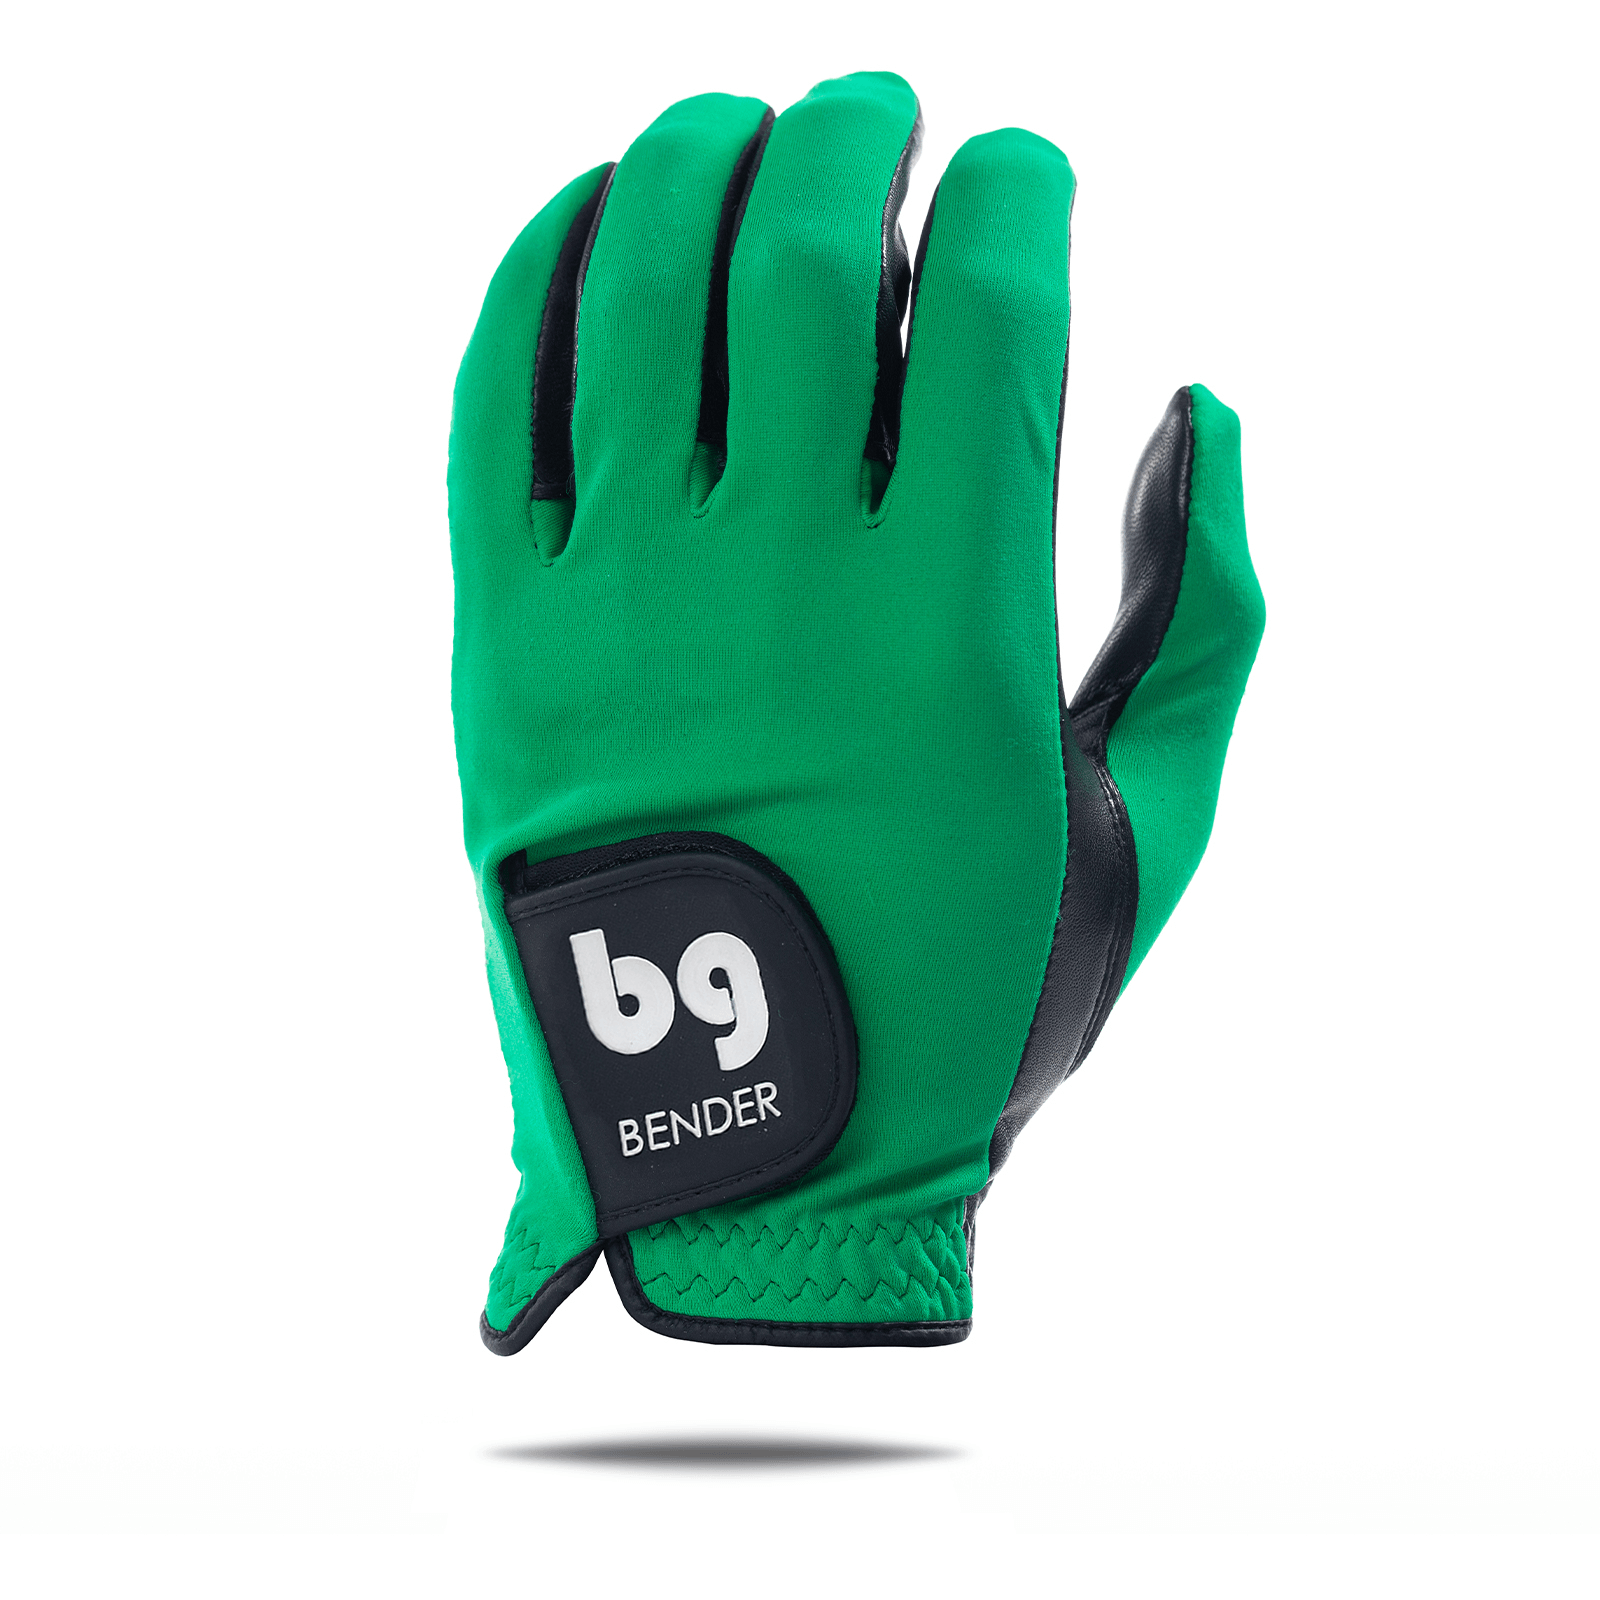 Green Spandex Golf Glove